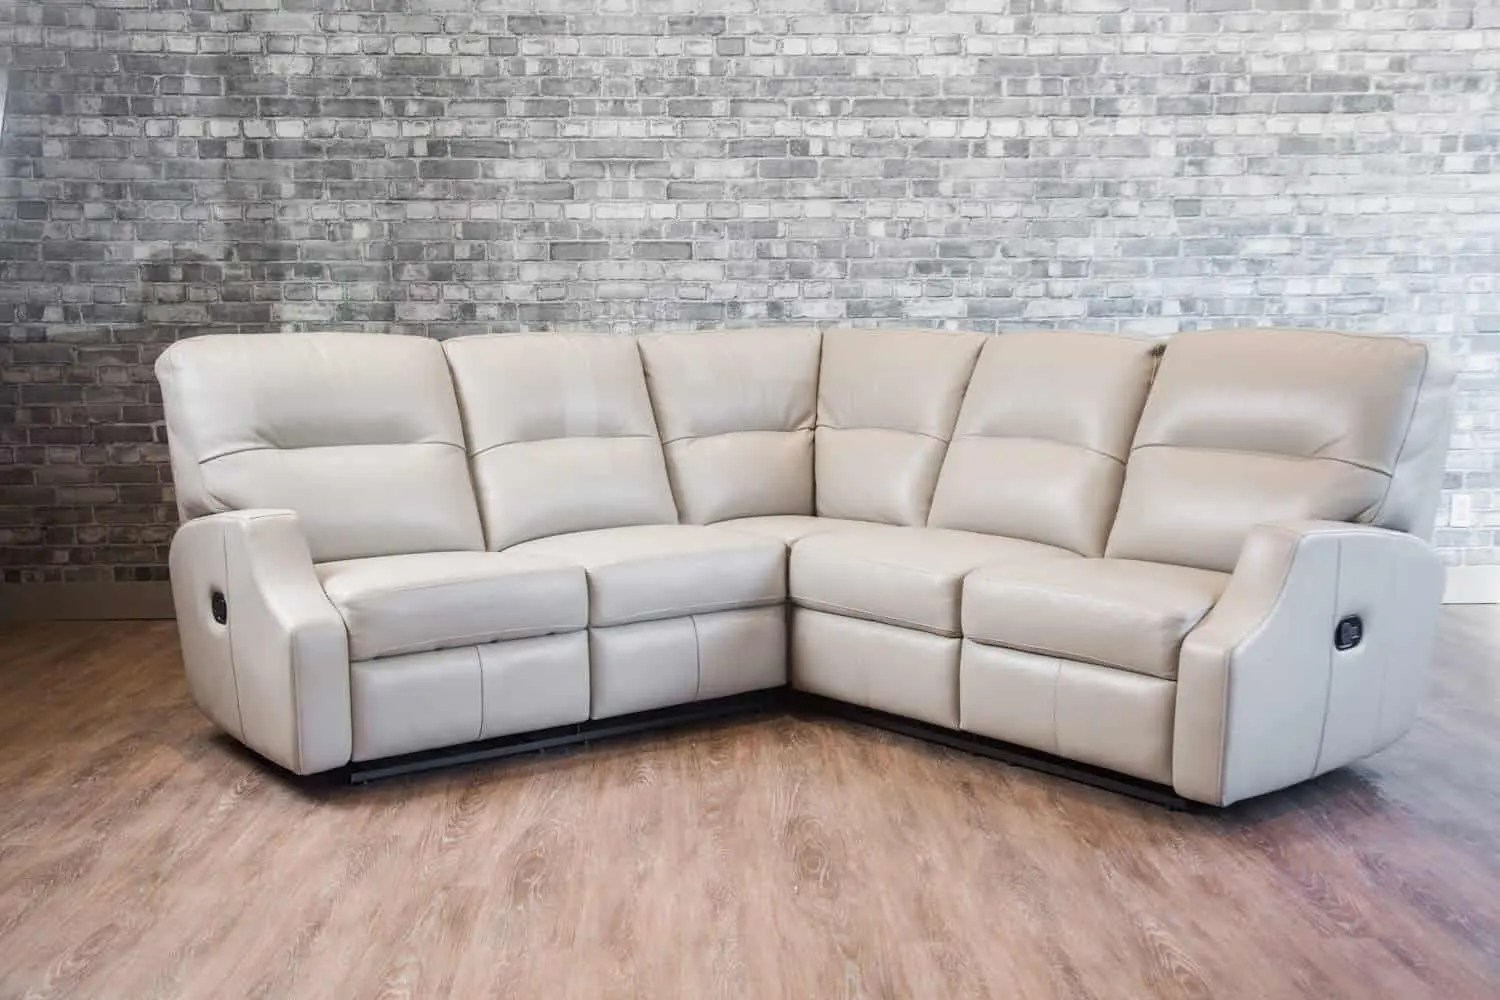 Leather Recliner Chairs Canada The Saturn Reclining Leather Sectional Canada 39s Boss